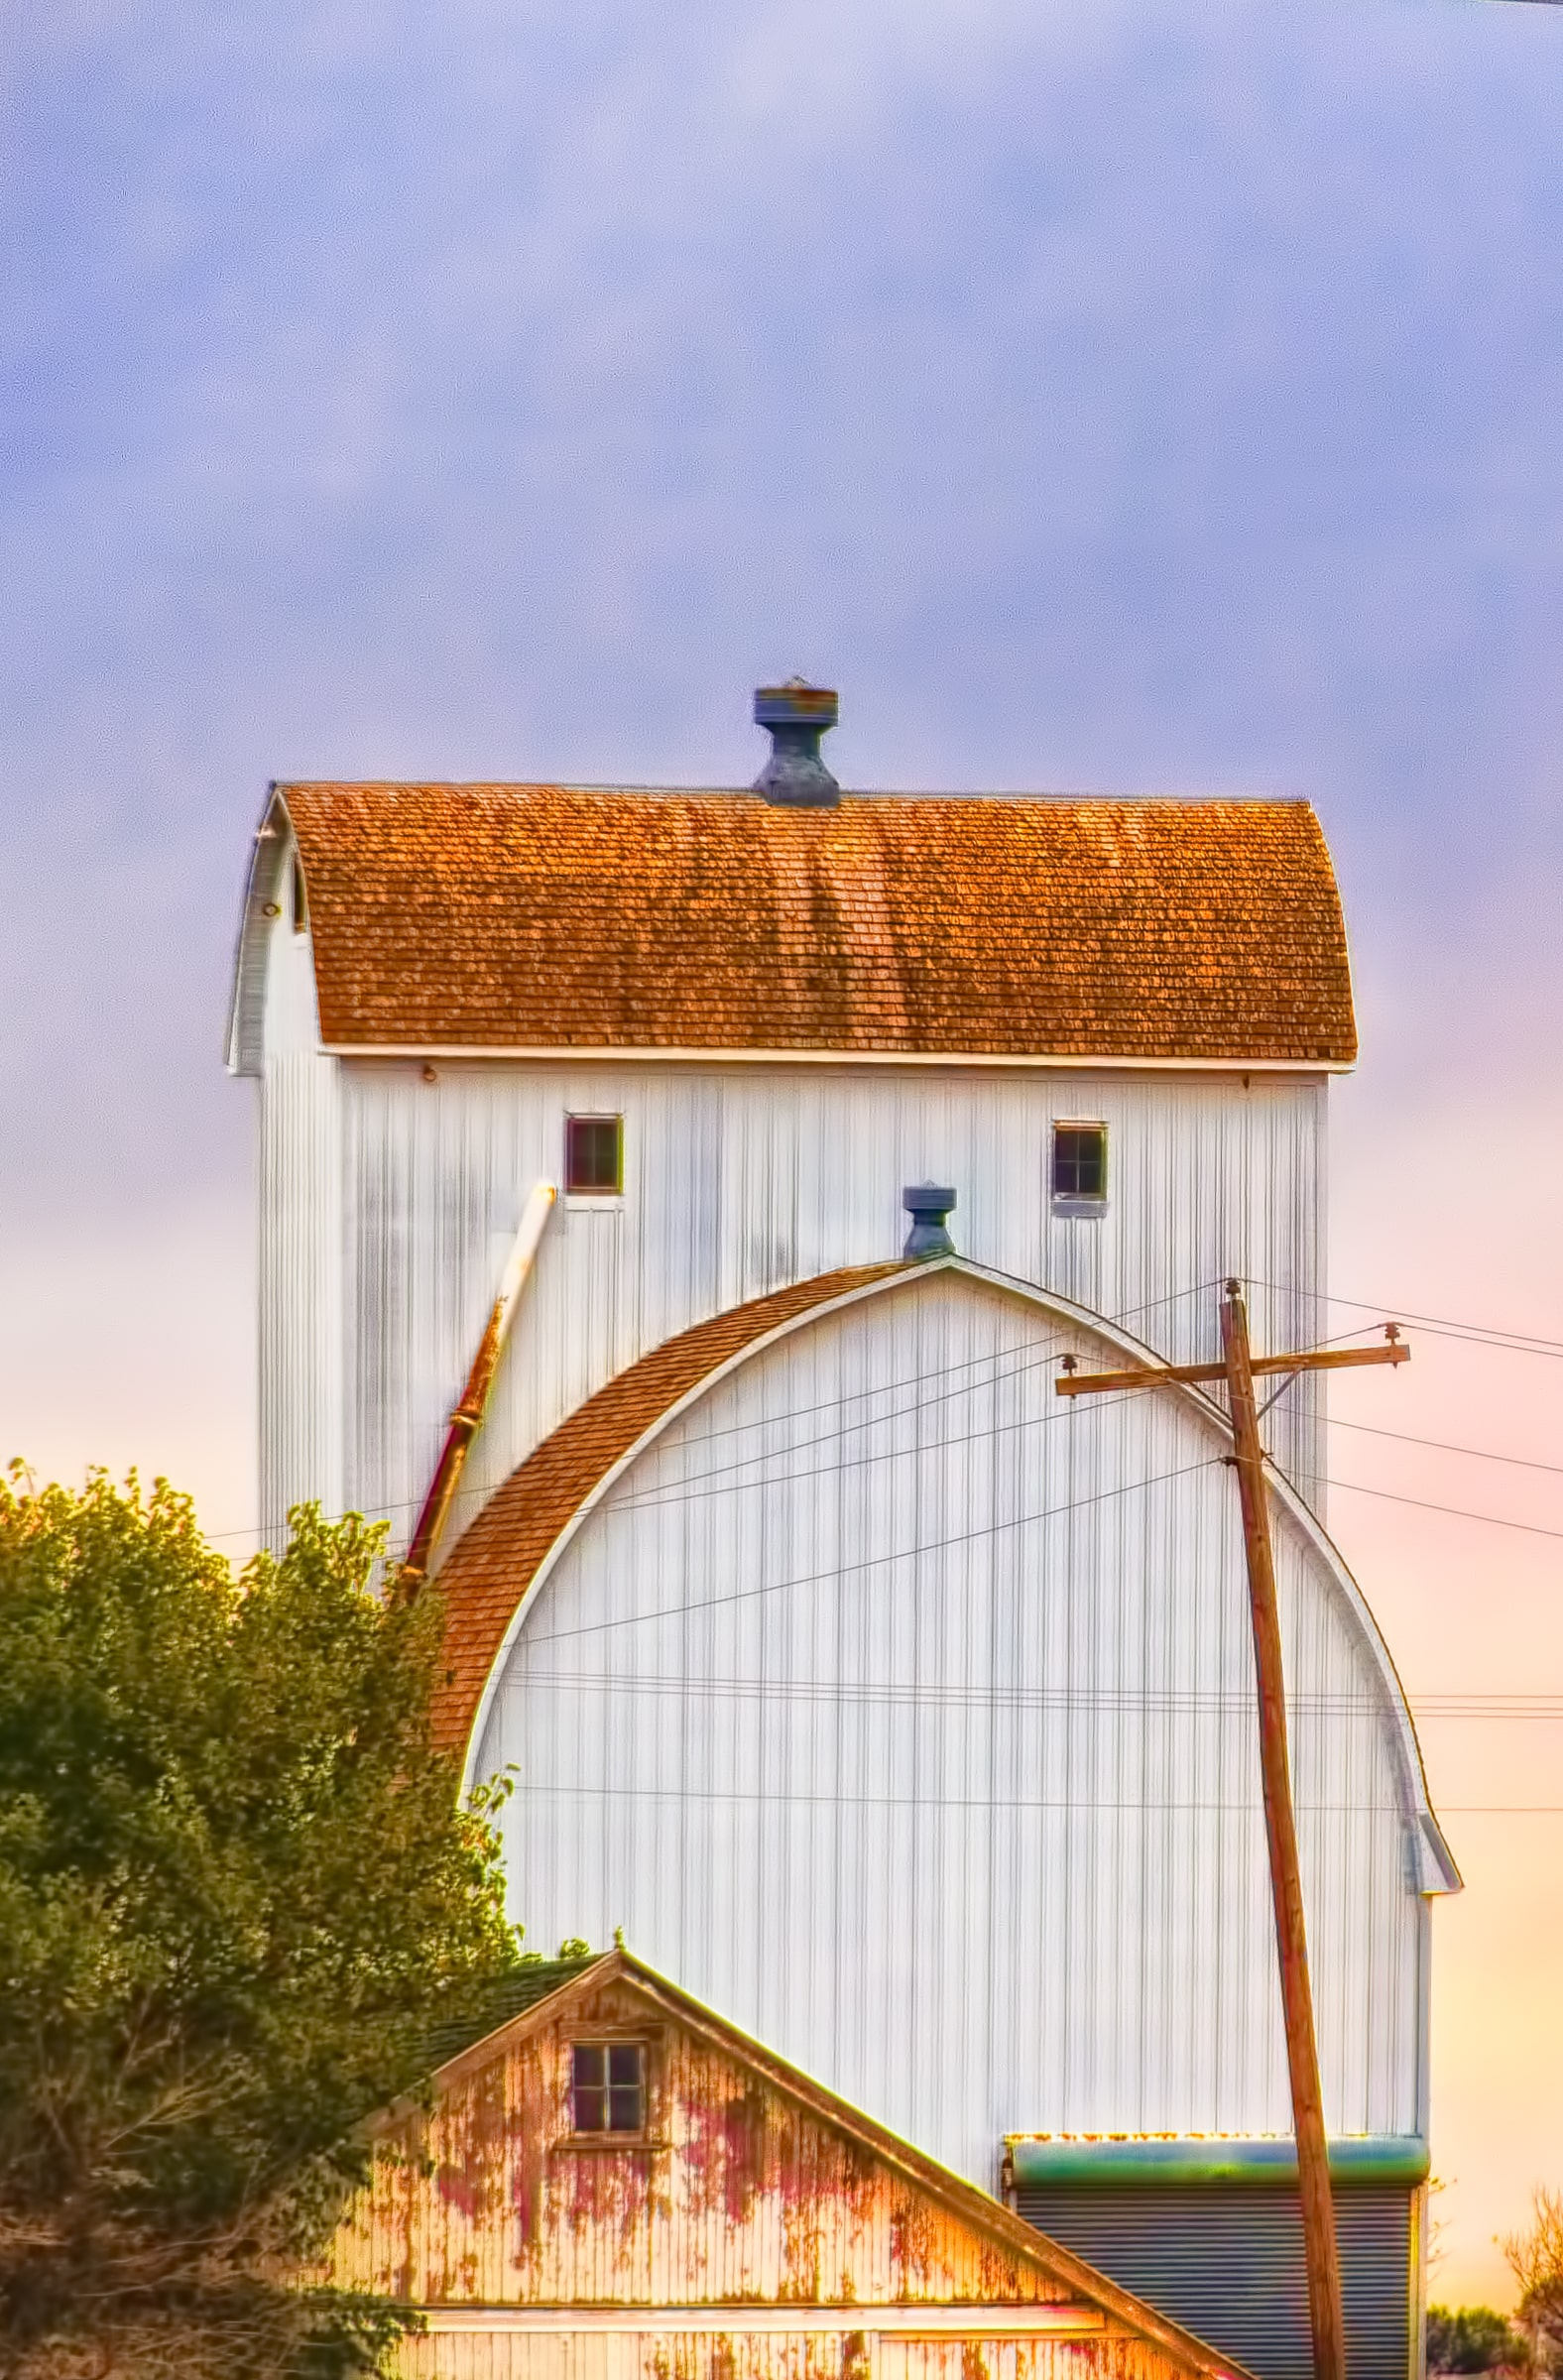 White-painted arched-roof Nebraska barn.